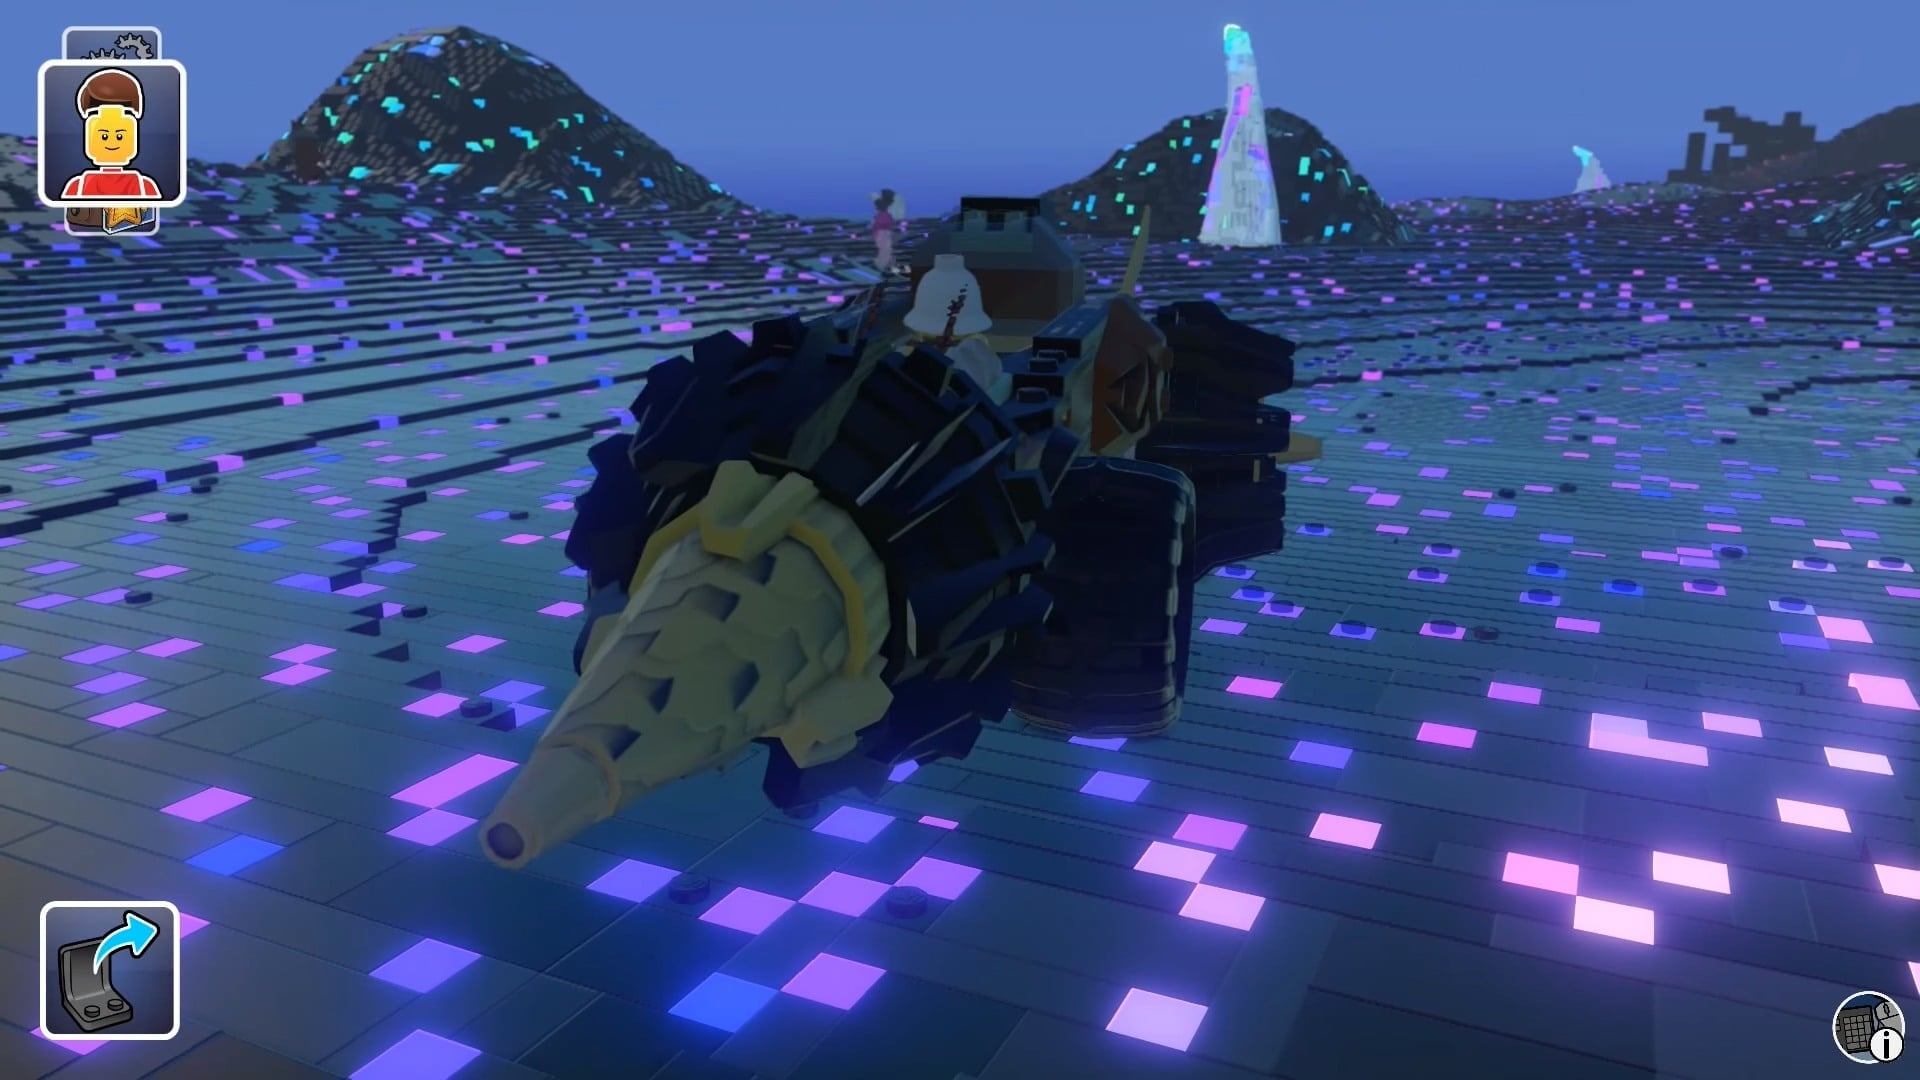 LEGO Worlds wallpapers, pictures, images HD Download